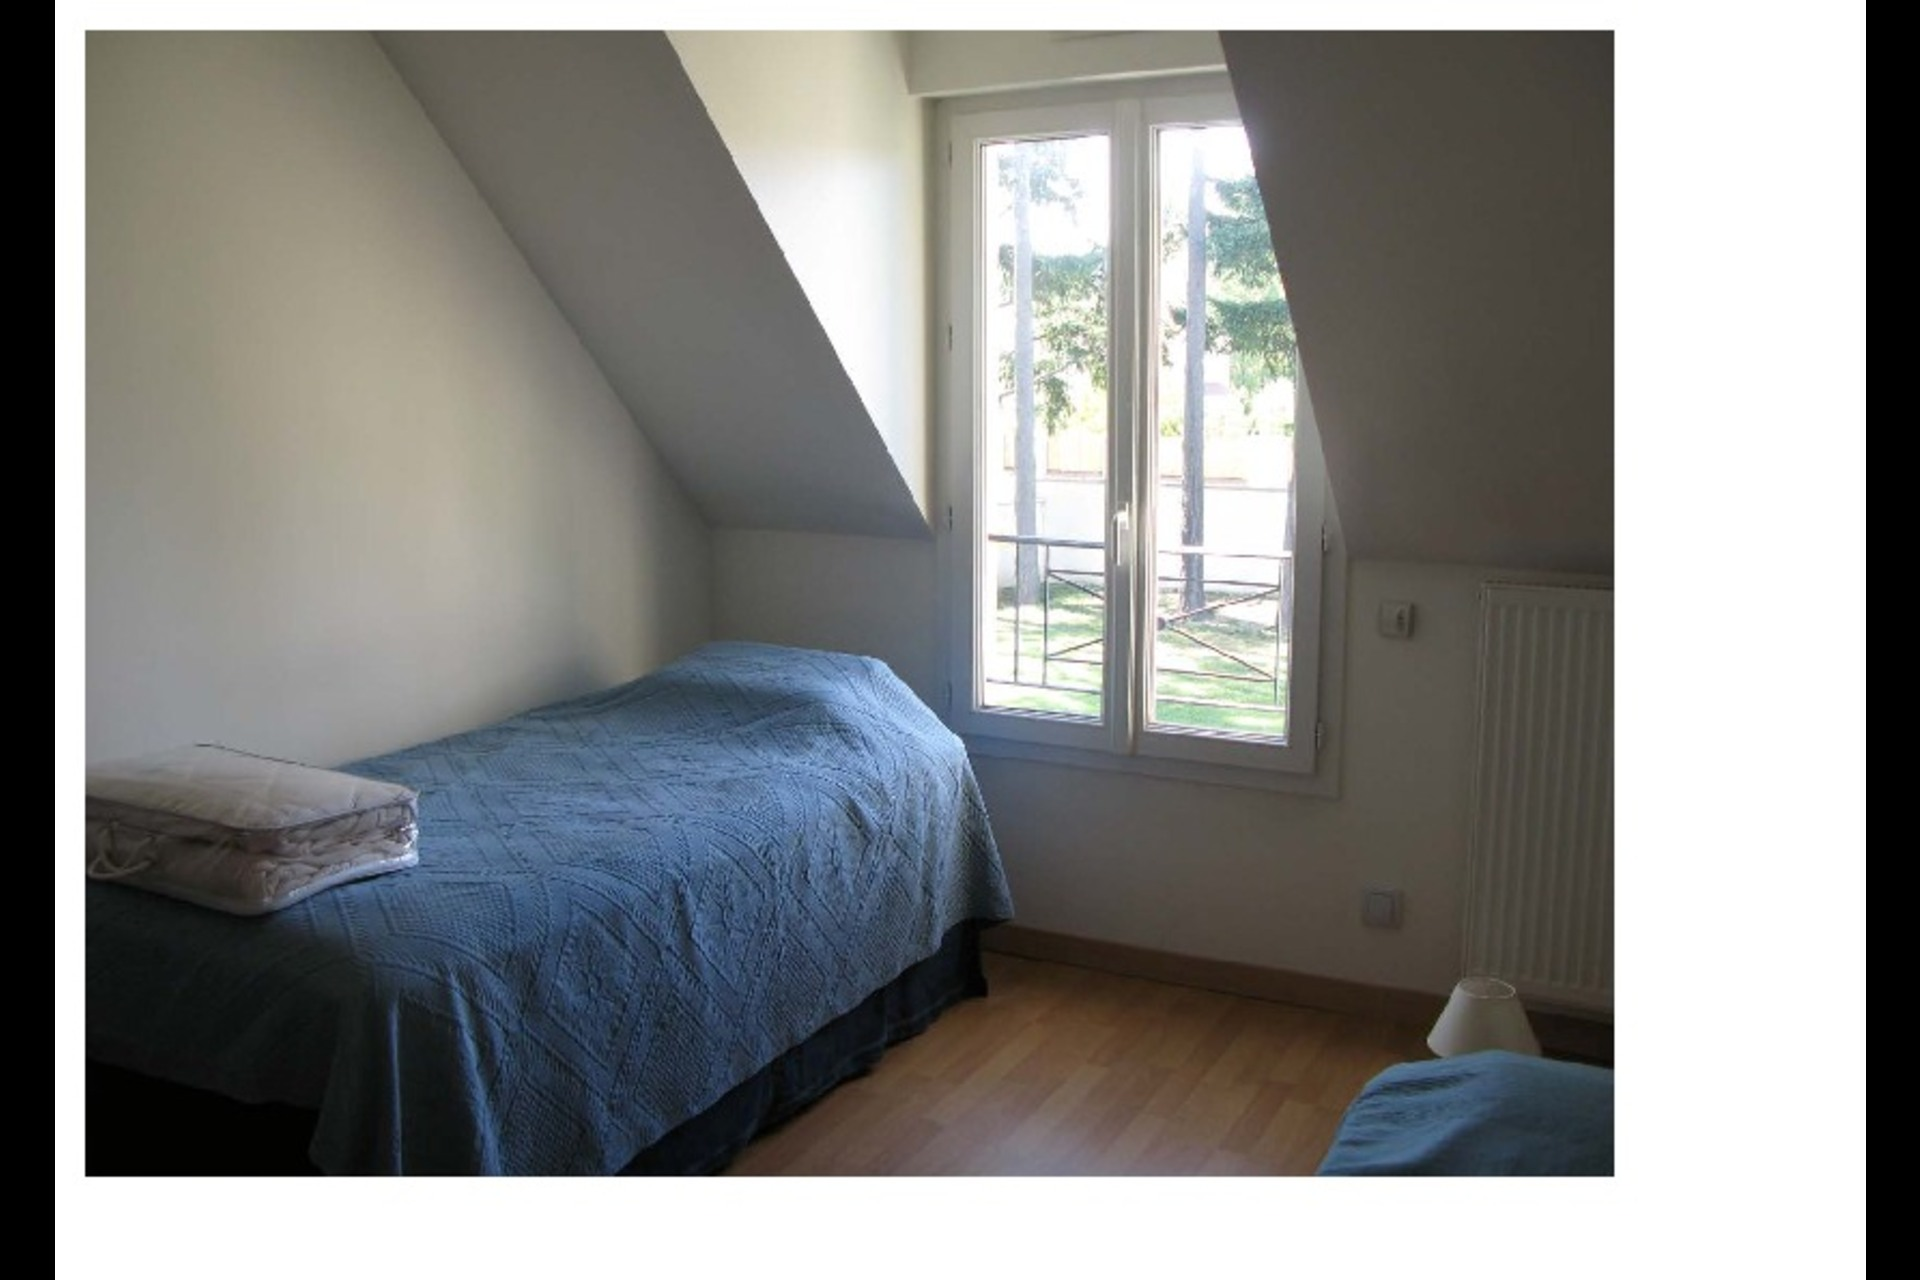 image 7 - House For rent feucherolles - 9 rooms